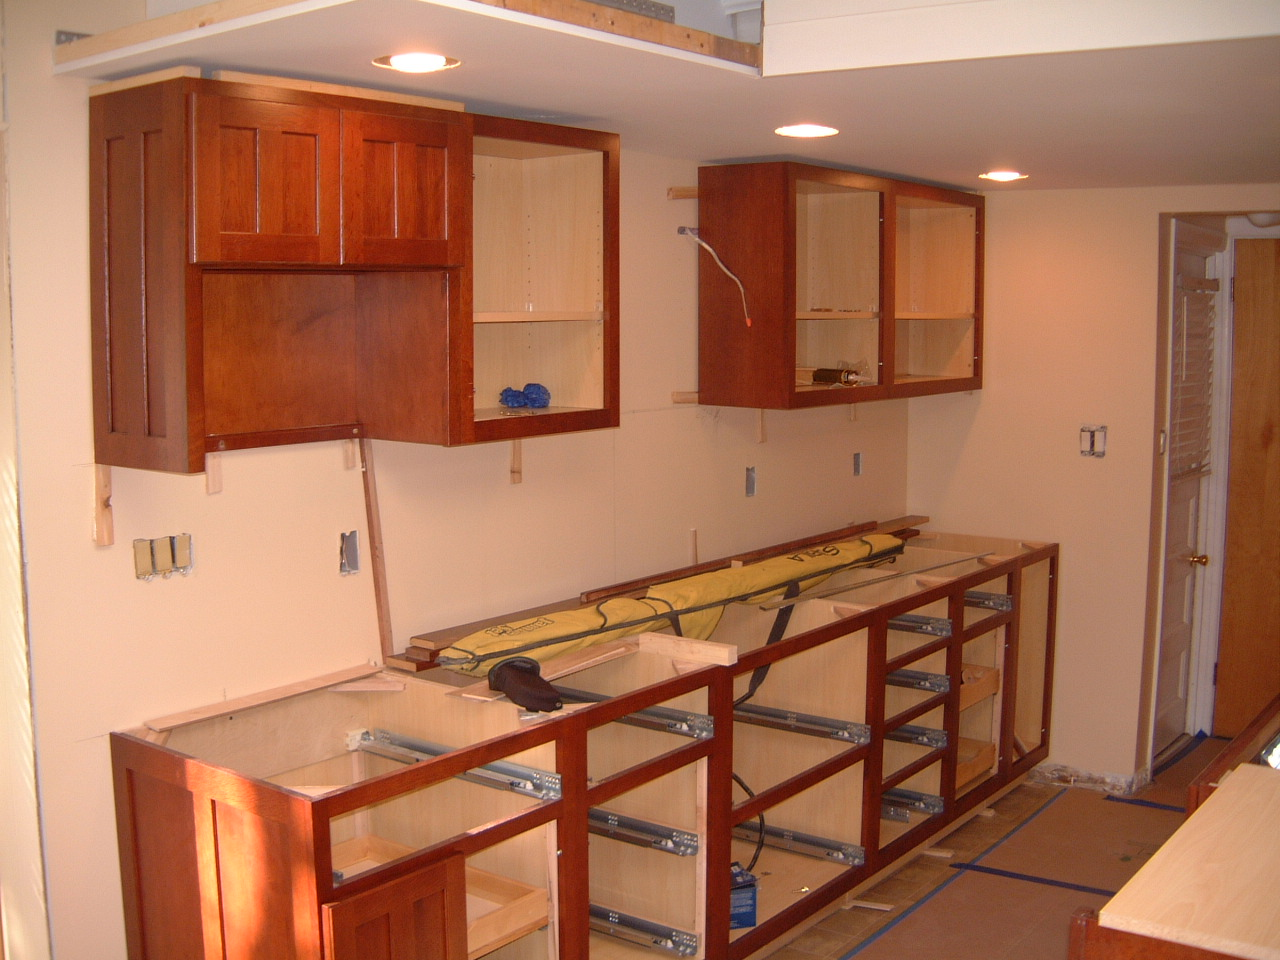 Springfield kitchen cabinet install remodeling designs for Kitchen cabinet remodel